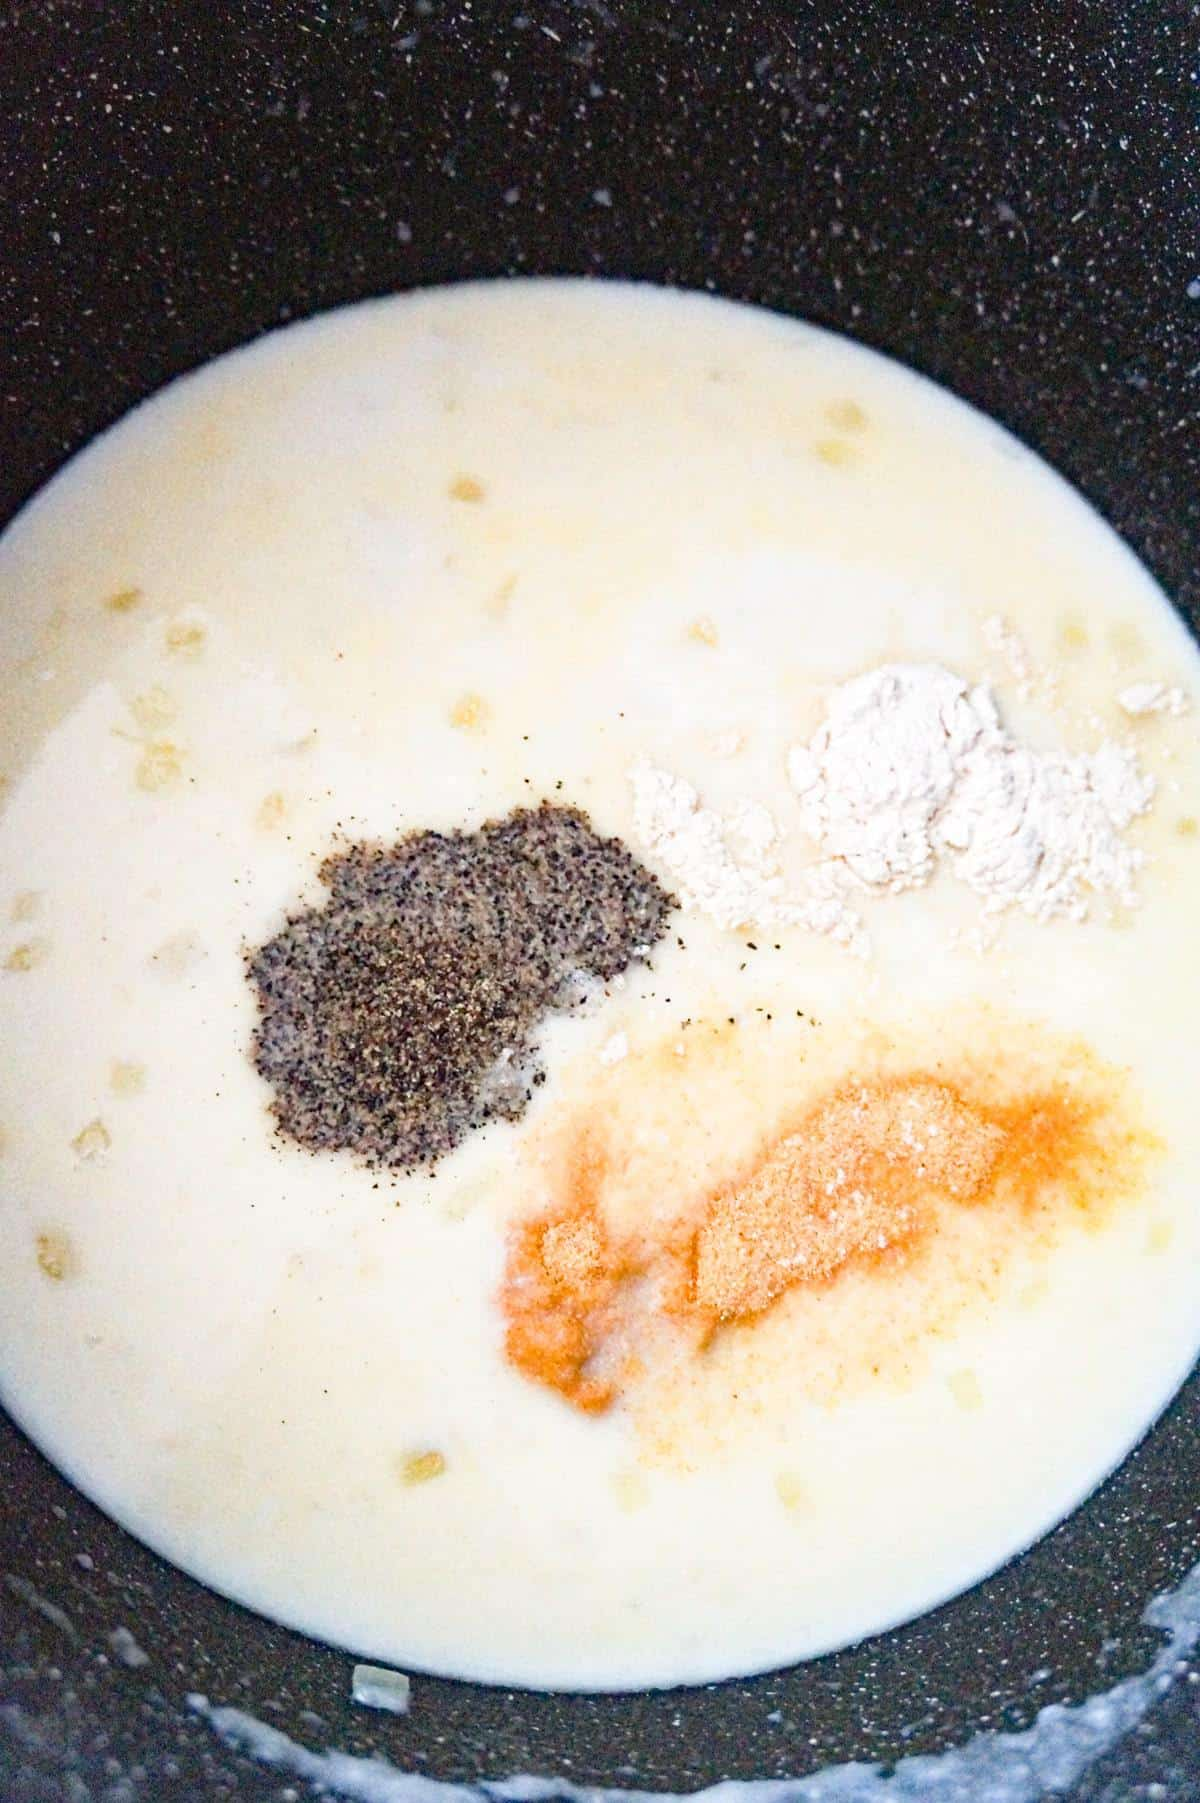 spices on top of creamy onion soup in a large pot